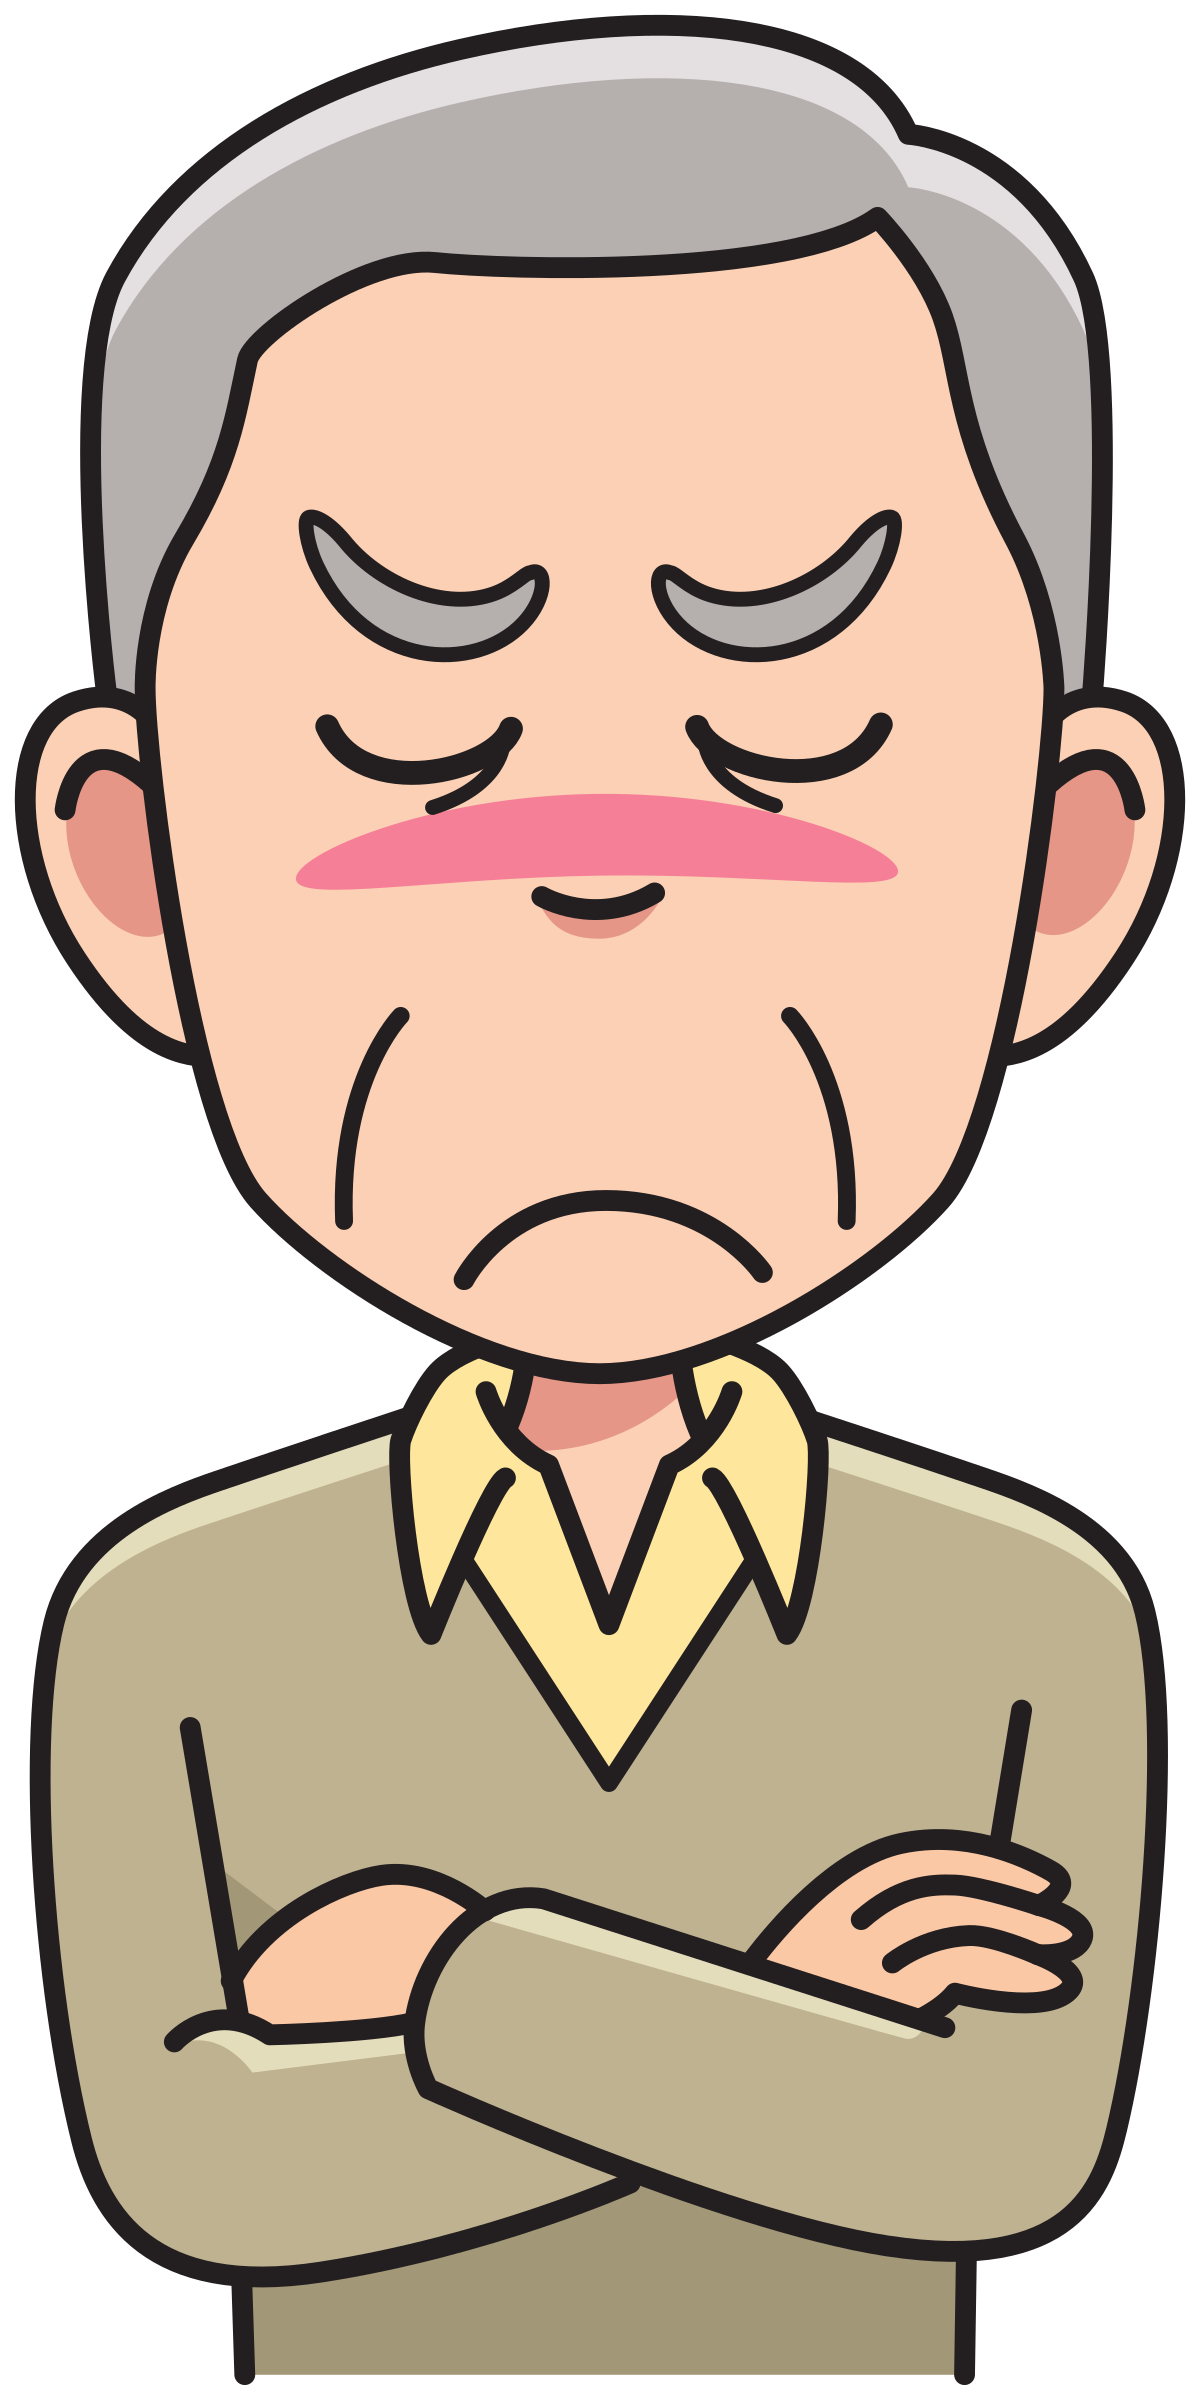 Clipart man angry, Clipart man angry Transparent FREE for.